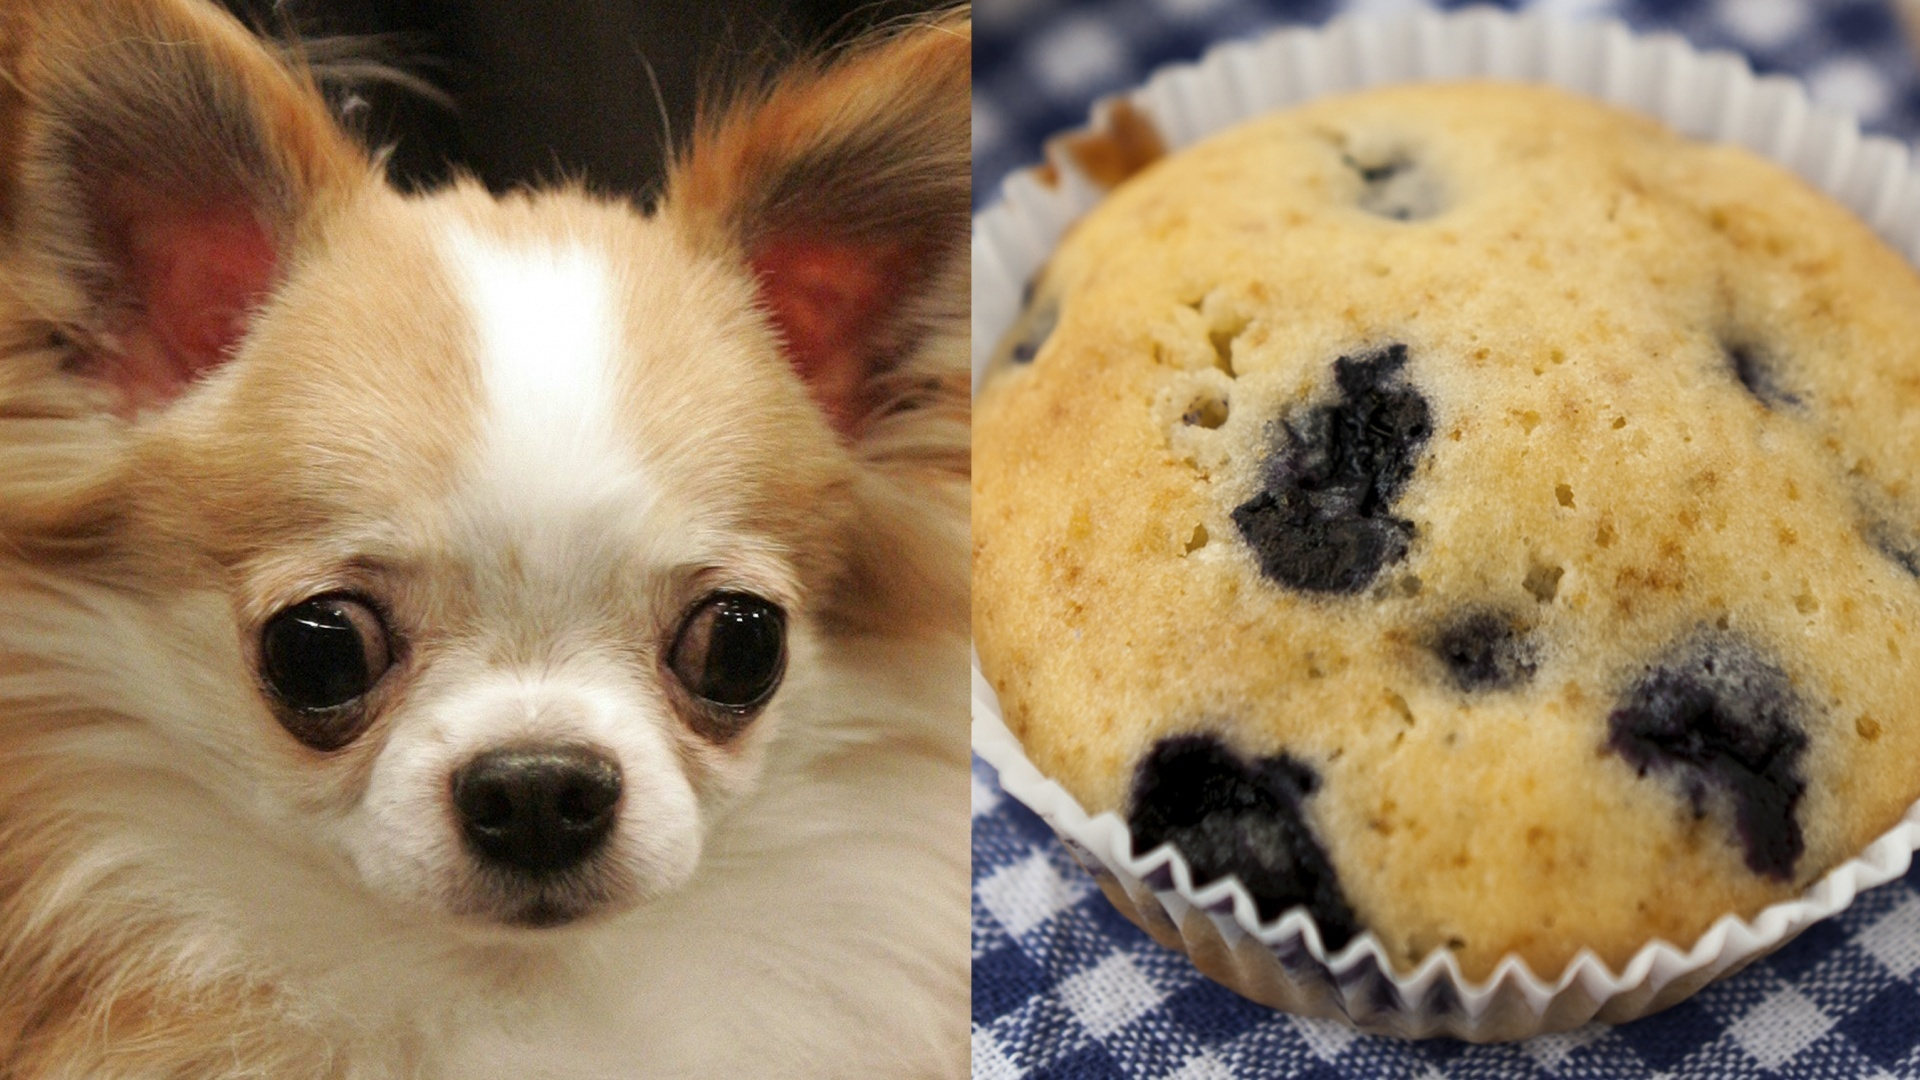 Chihuahua and muffin.